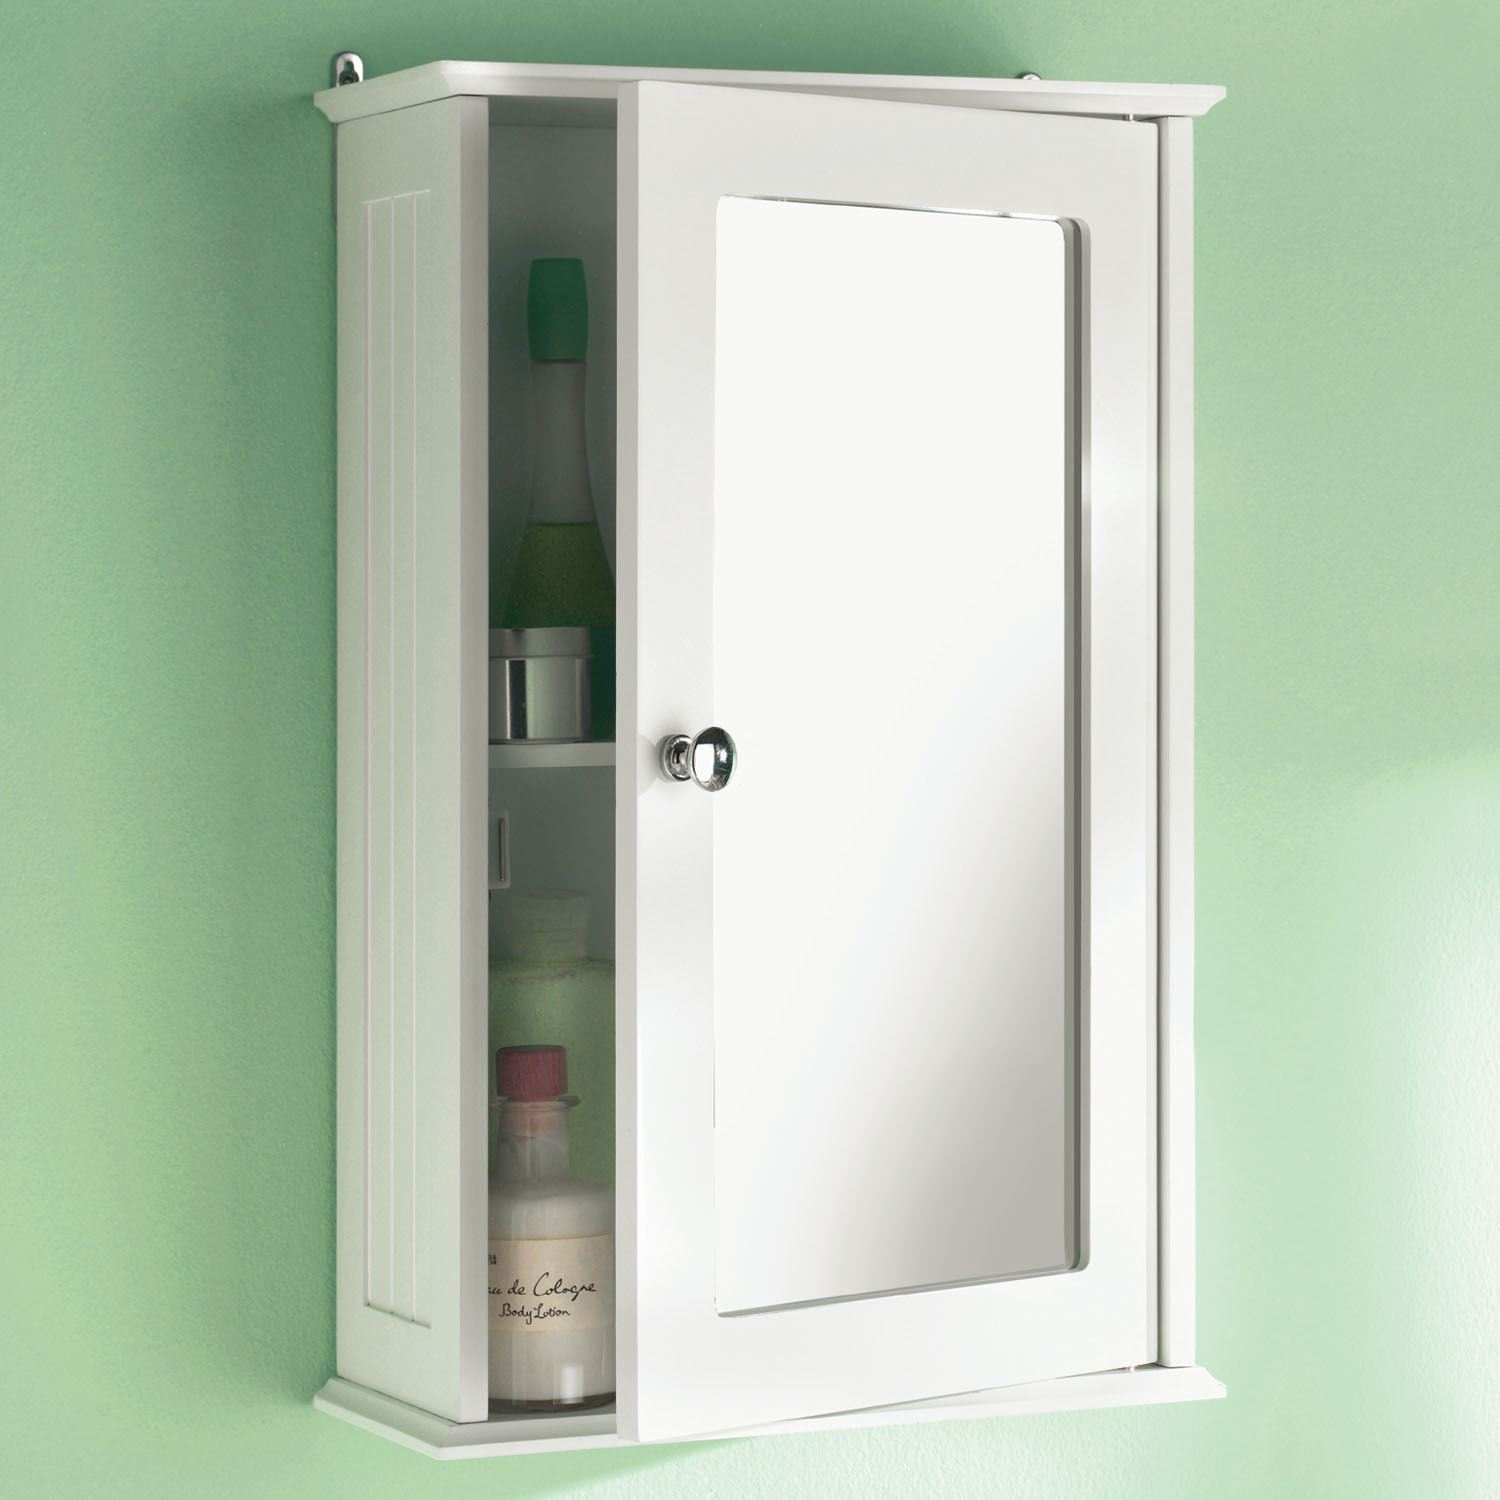 wall mounted bathroom wall cabinet single mirror door cupboard white rh ebay co uk solid wood white bathroom wall cabinet White Deep Wall Cabinet for Bathroom